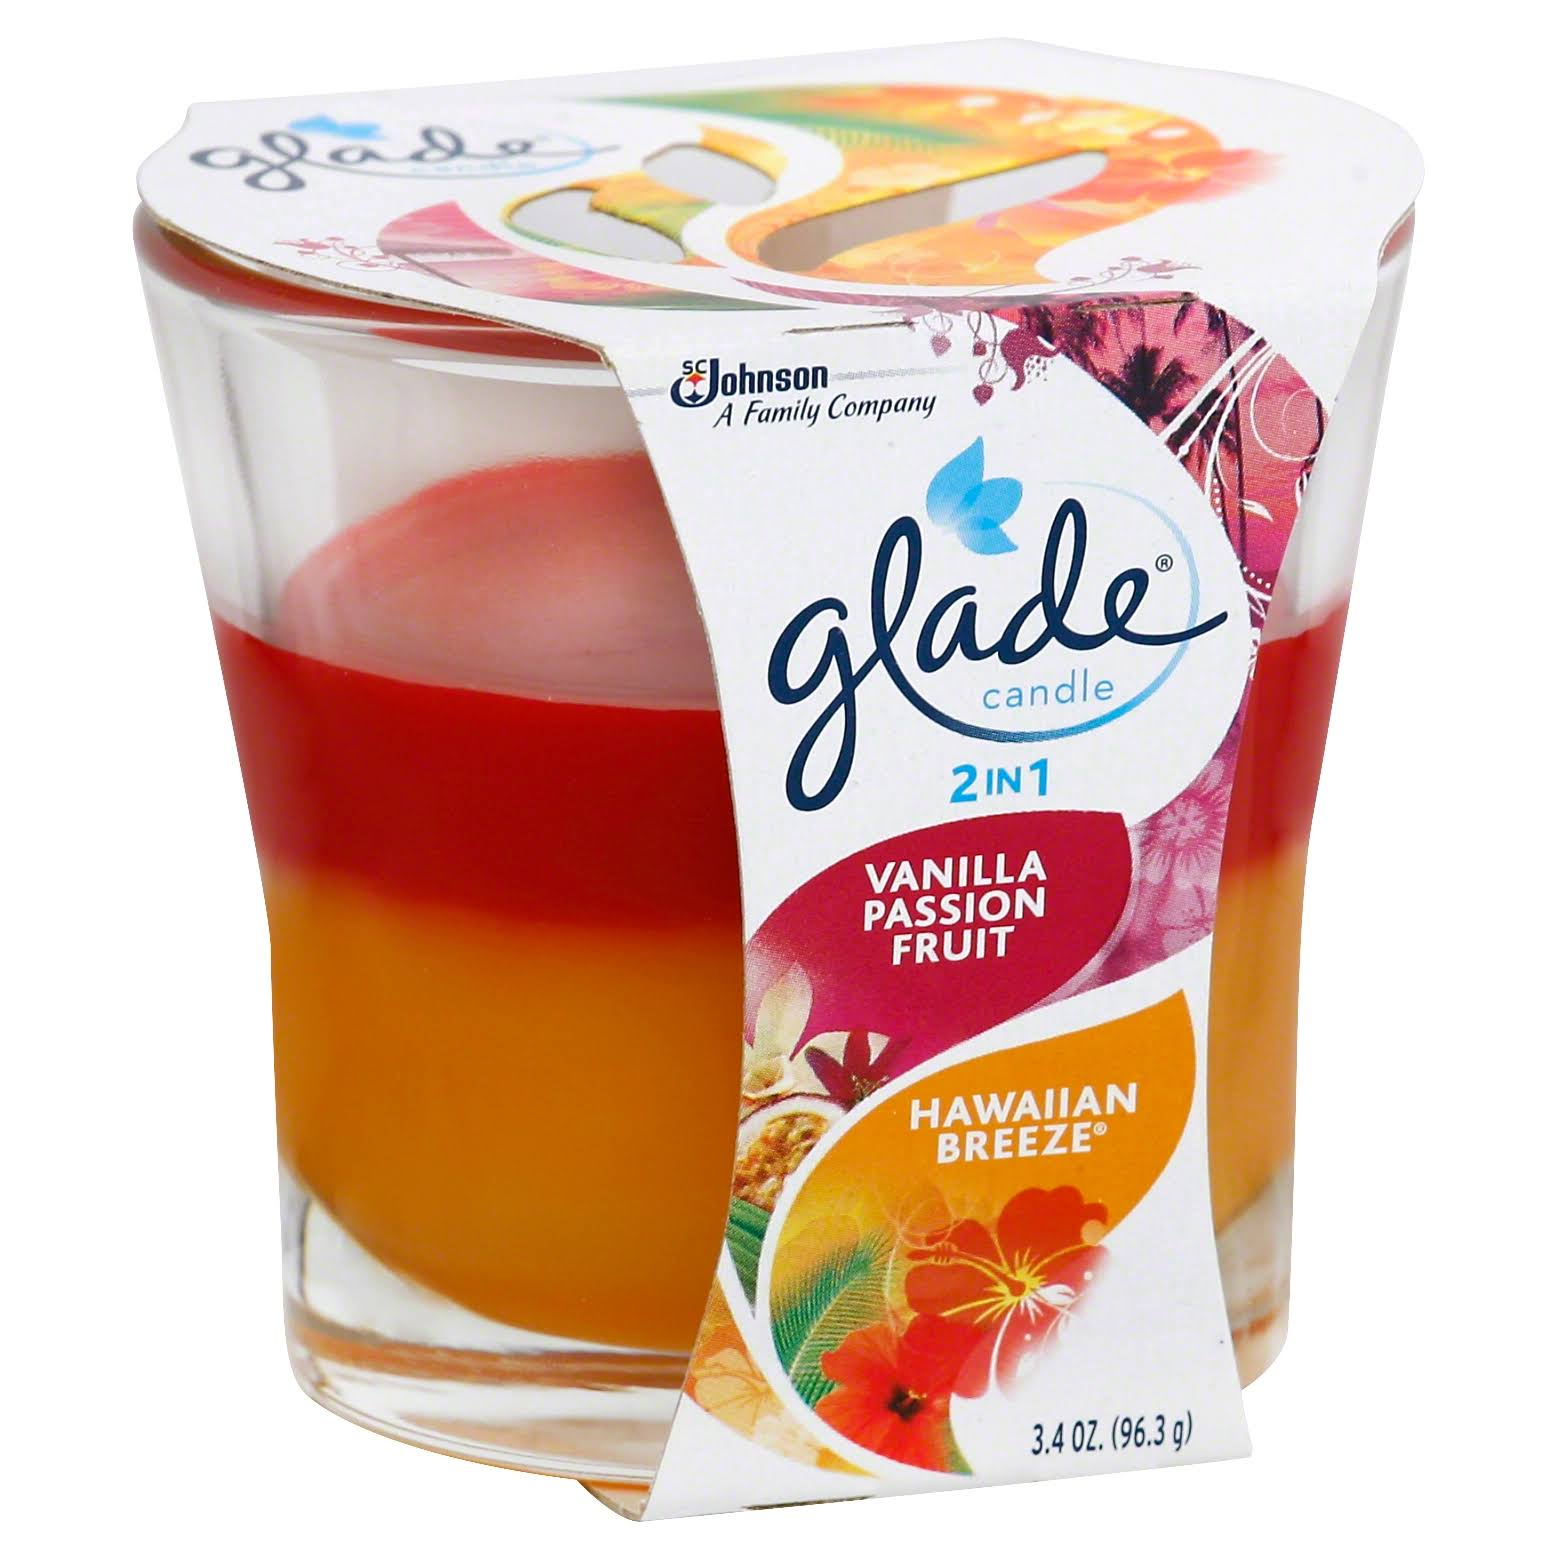 SC Johnson Glade 2 in 1 Vanilla Passion Fruit and Hawaiian Breeze Candle